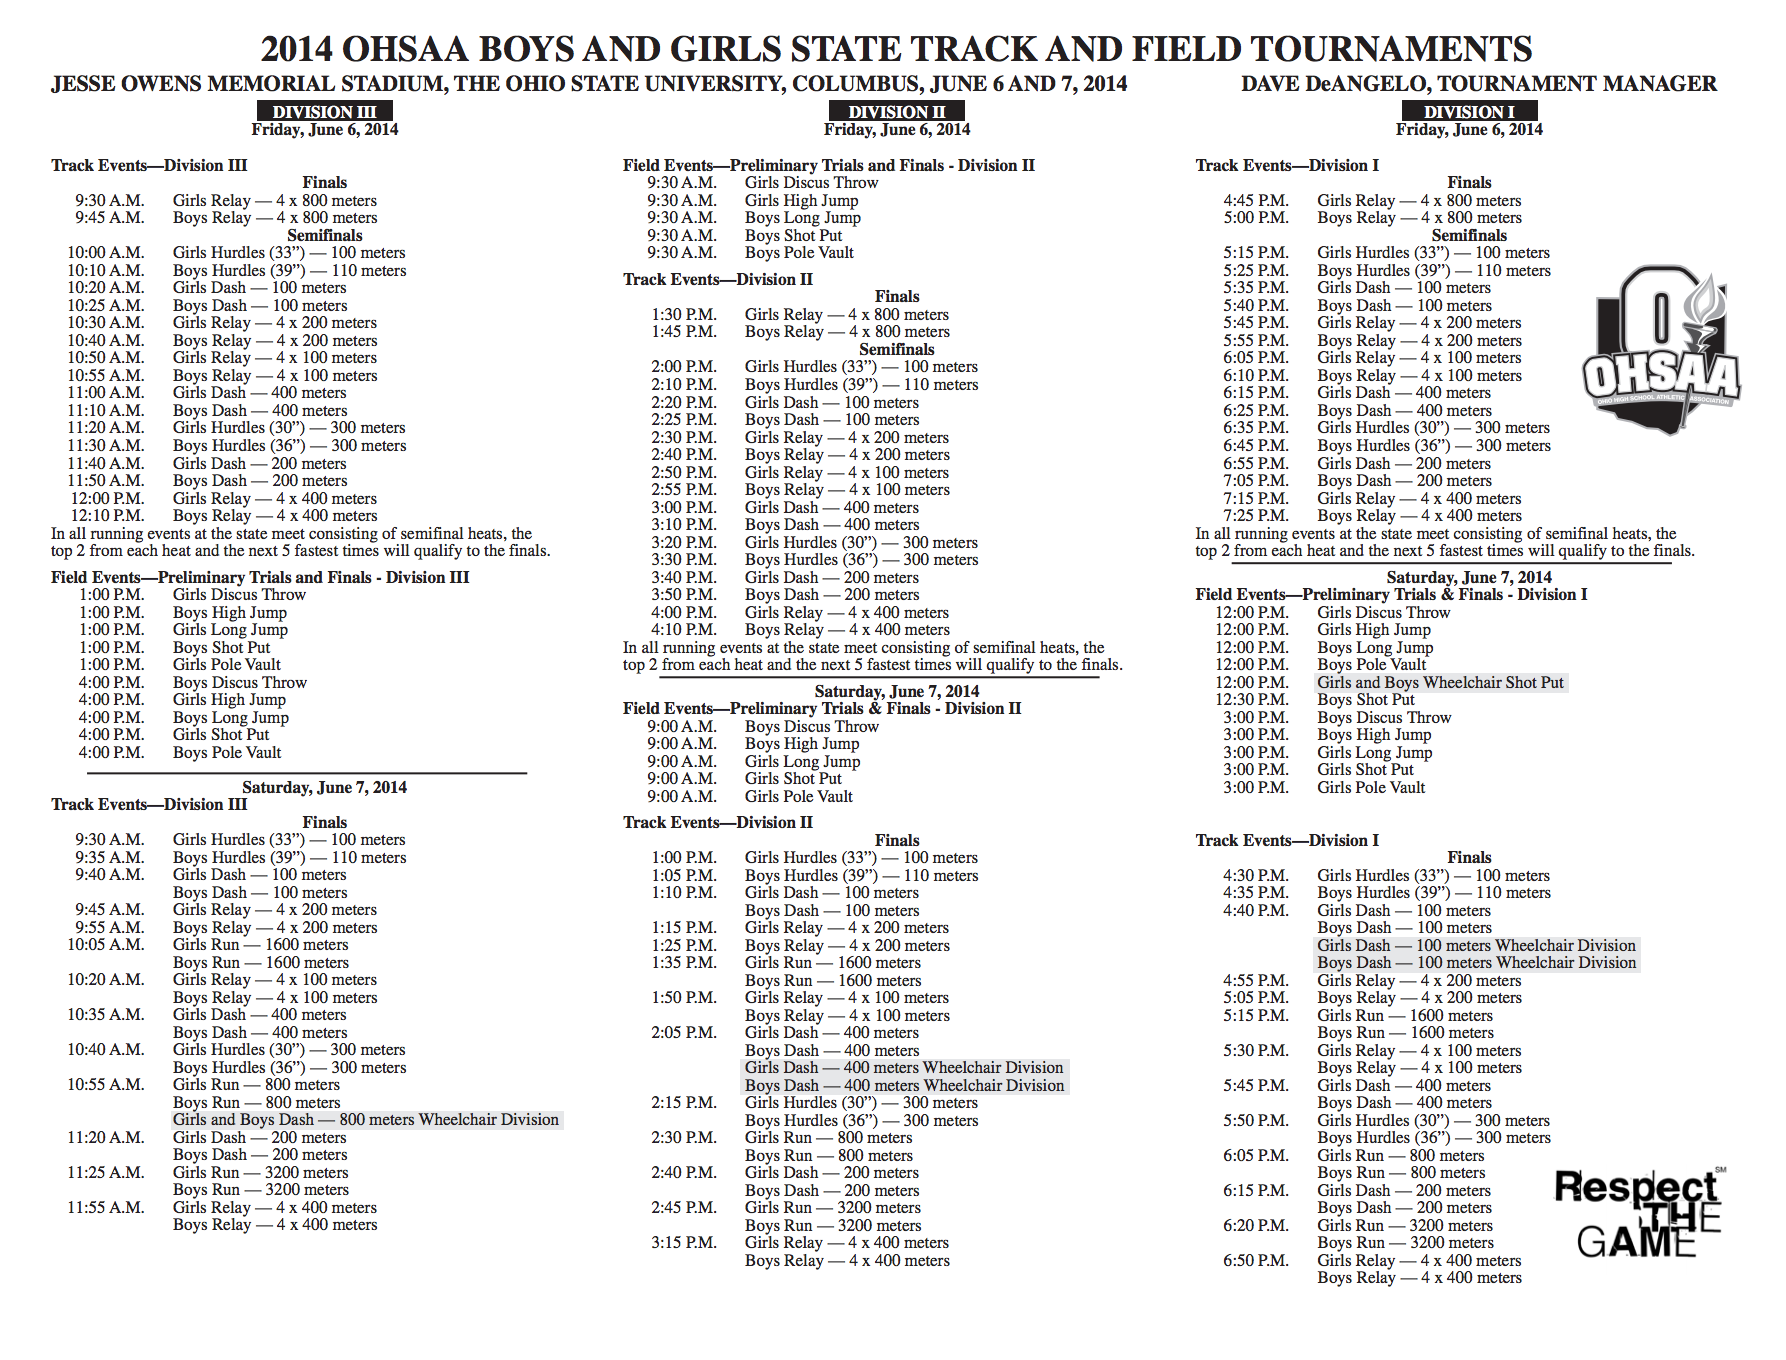 2015 ohio state track and field meet